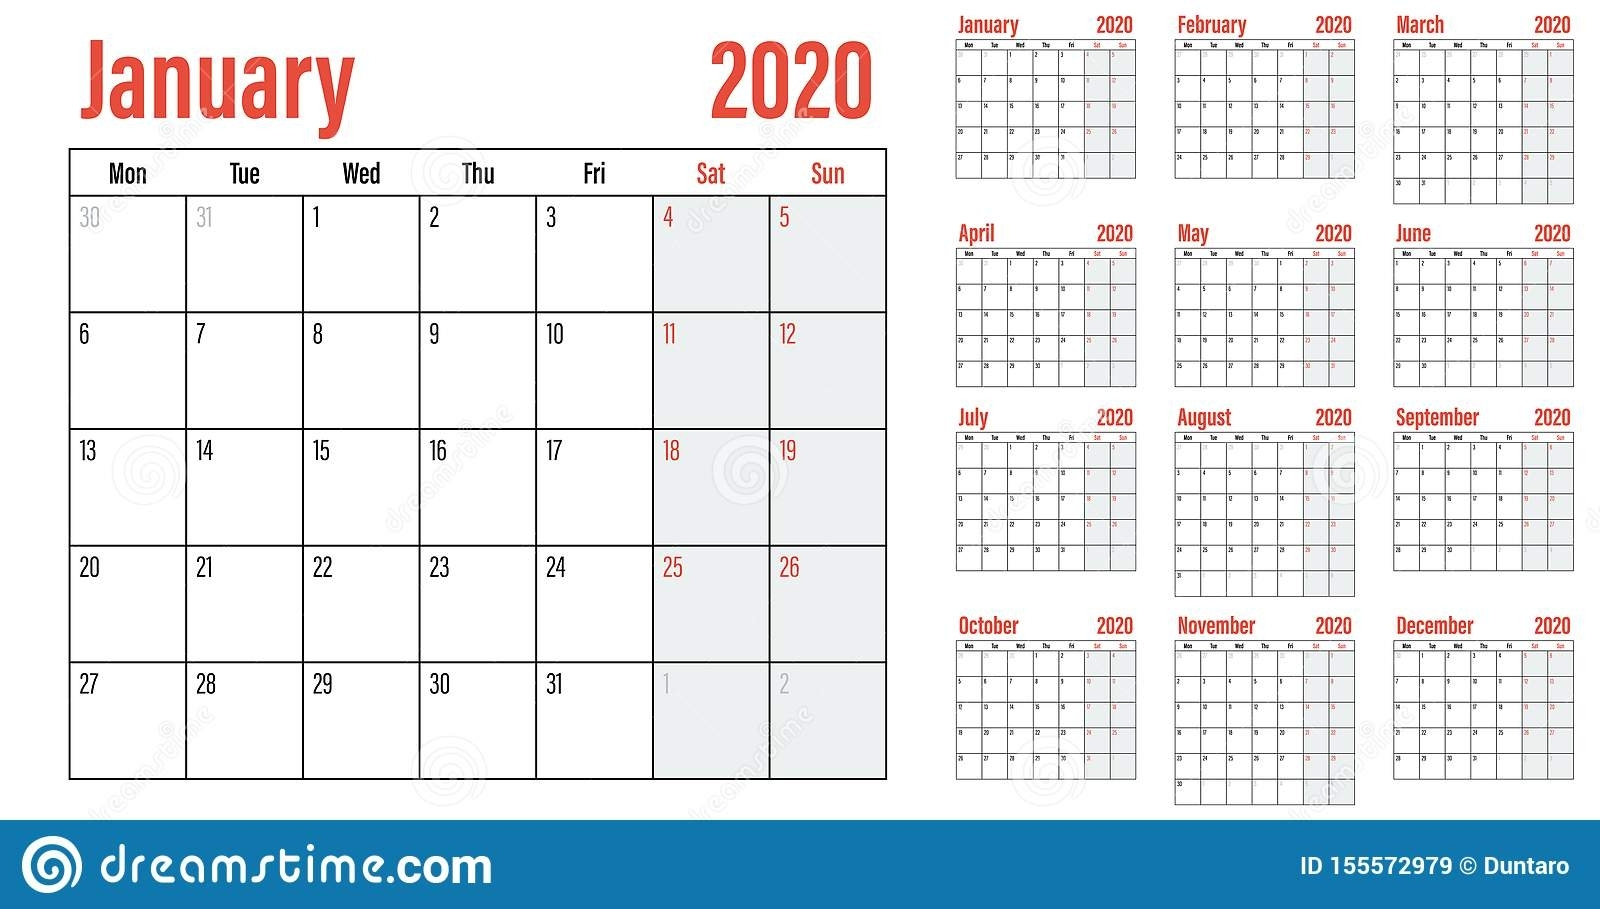 Calendar Planner 2020 Template Vector Illustration Stock throughout 2020 12 Month Monday To Sunday Calendar Template